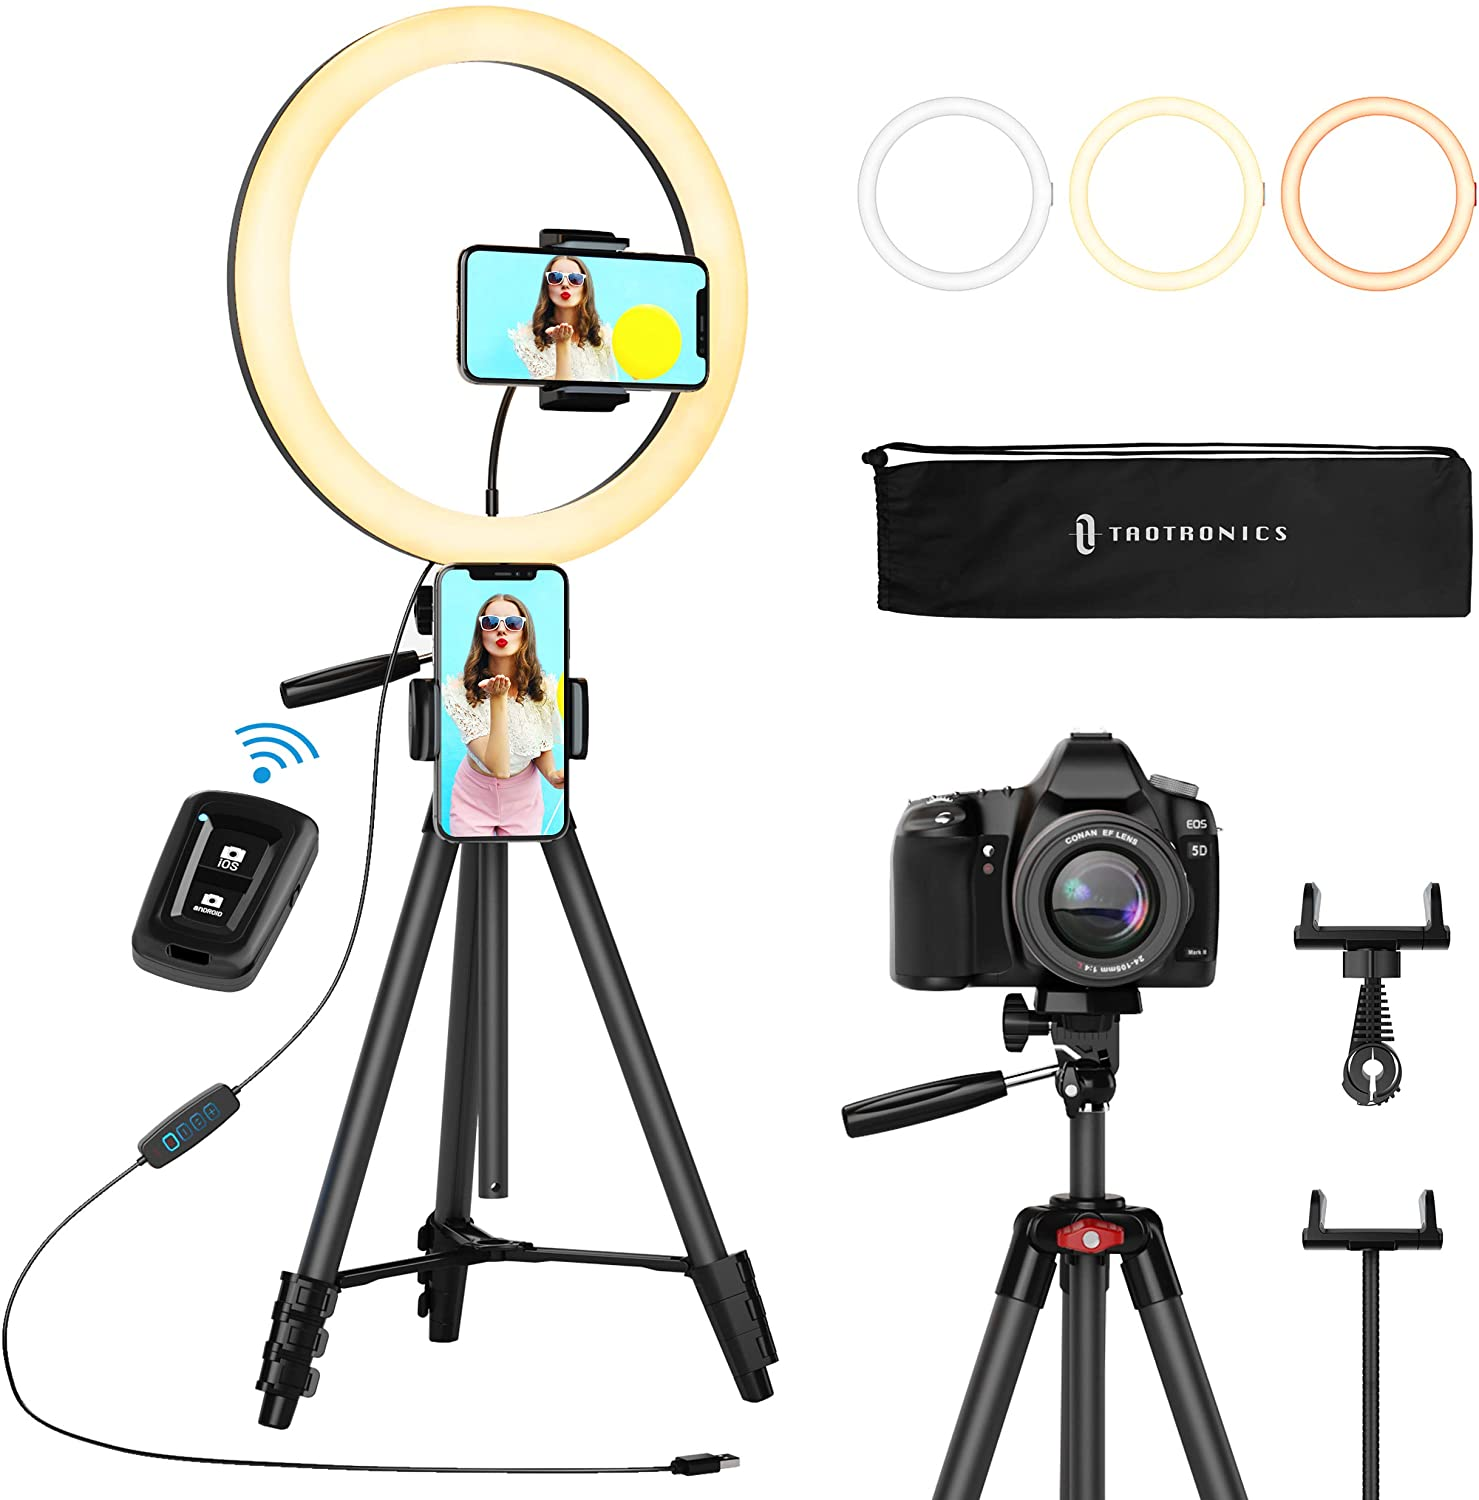 TaoTronics 12 Inch Selfie Ring Light with 3 Color Modes, 10 Adjustable Brightness, 61 Inch Extendable Tripod, 2 Phone Holders, Bluetooth Remote Shutter for Photography / Makeup / Live Streaming / YouTube / Vlogs